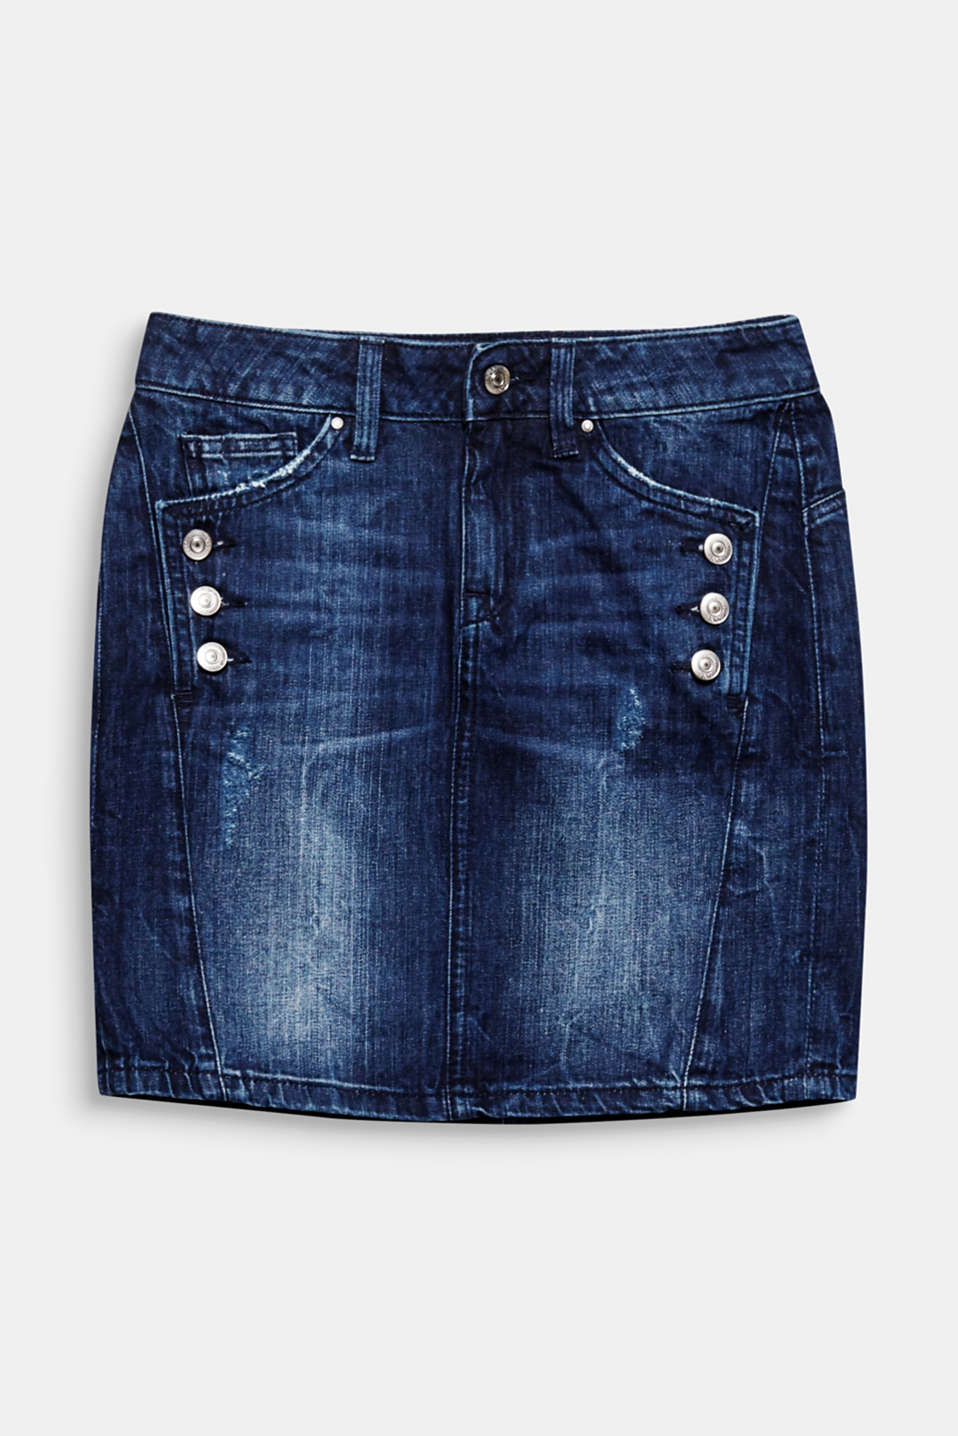 We love denim! The destroyed detailing and 2 side button plackets make this skirt extremely eye-catching.